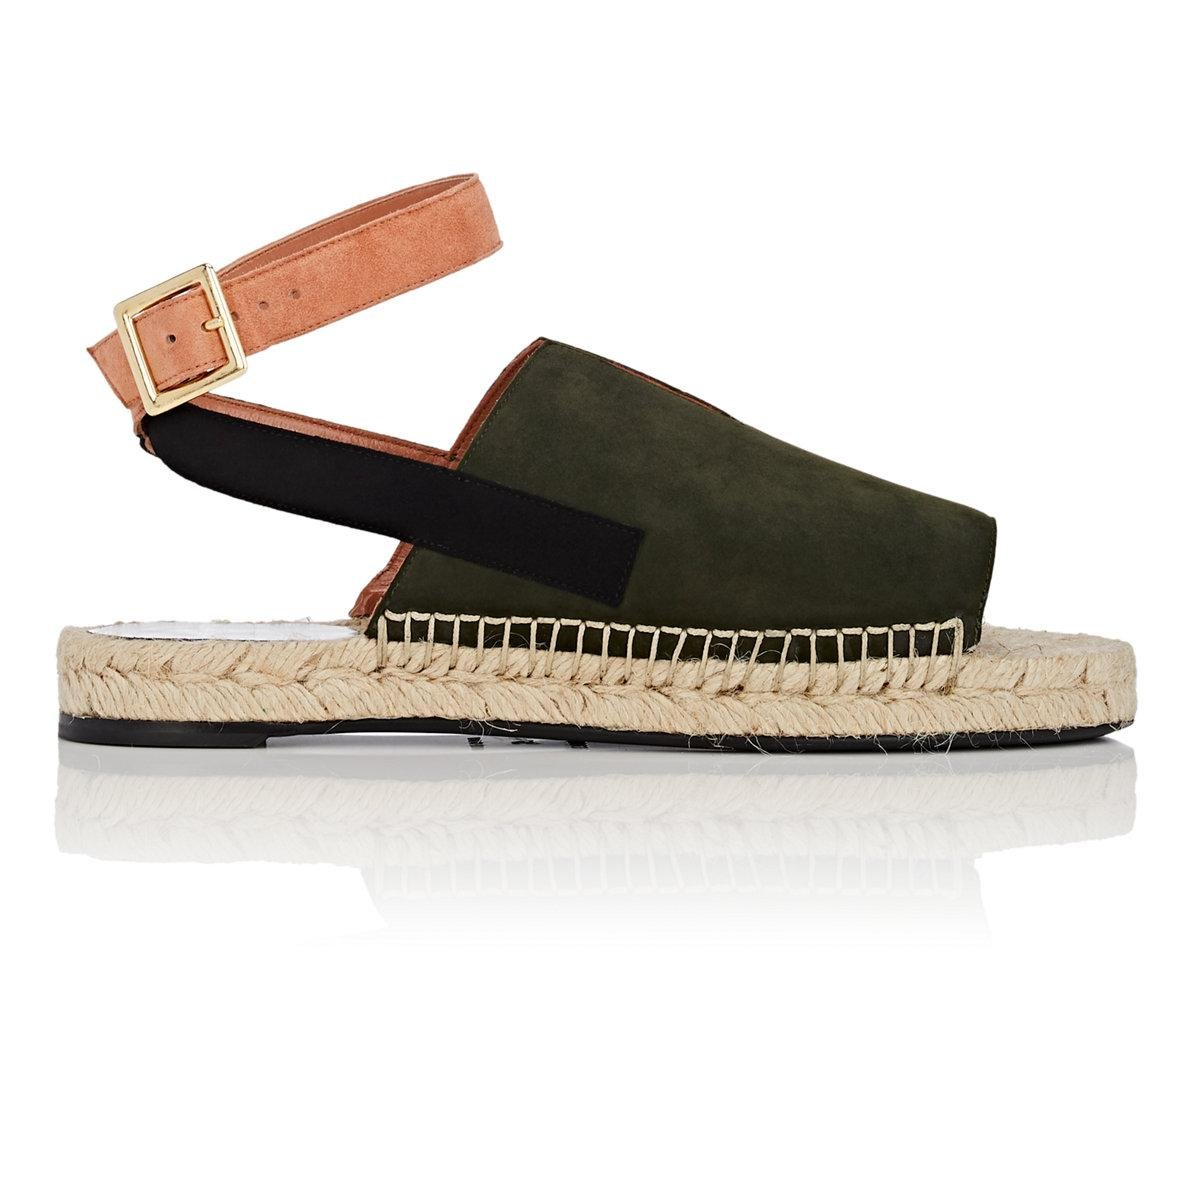 Womens Rally Leather Espadrille Sandals Pierre Hardy Hot Sale Online Footaction Online kqzv3yTpJB